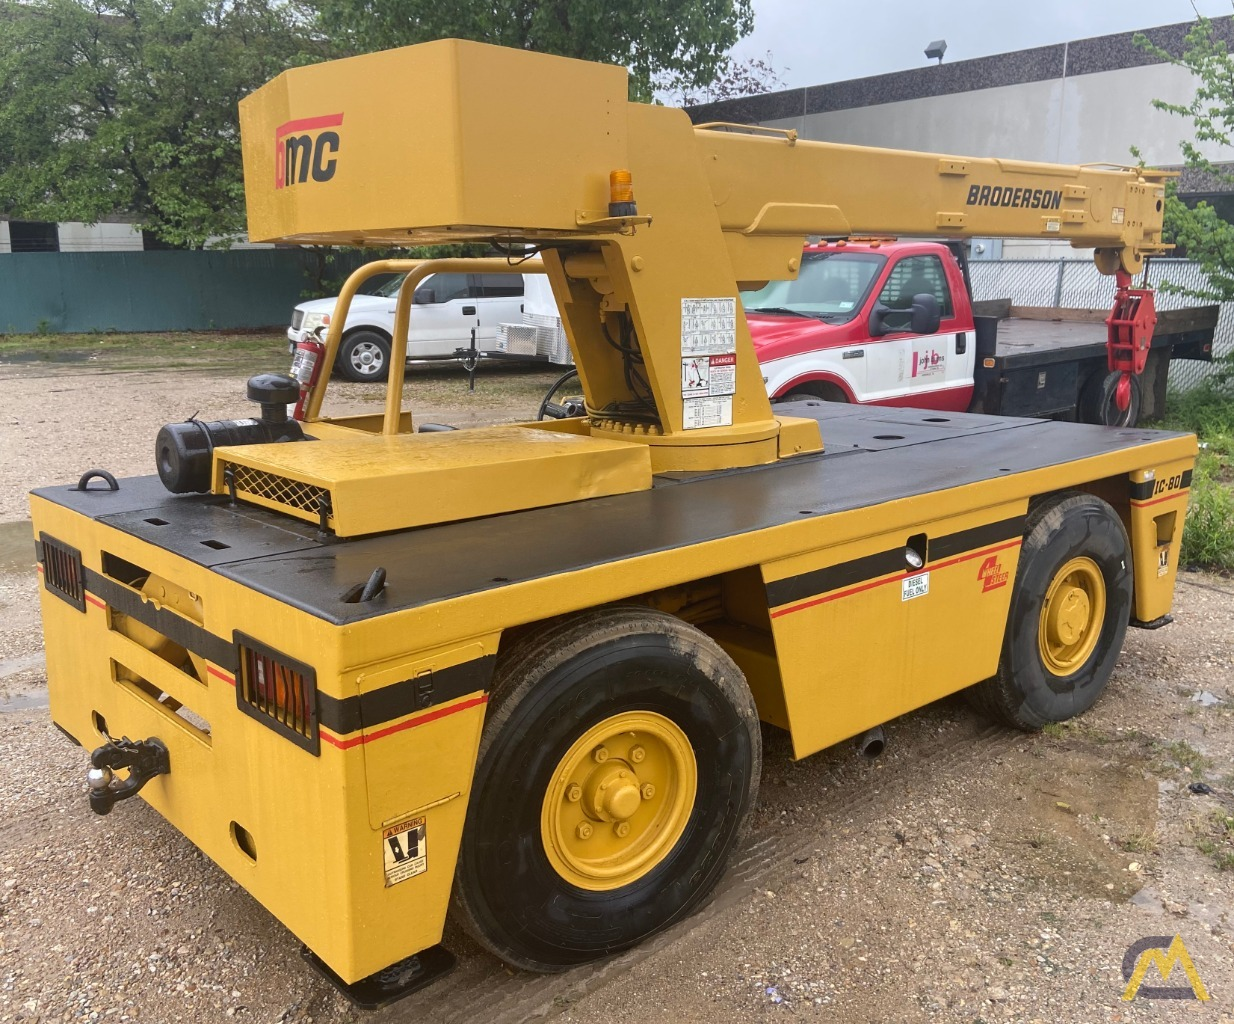 Broderson IC-80-3G 9-Ton Carry Deck Industrial Crane 5